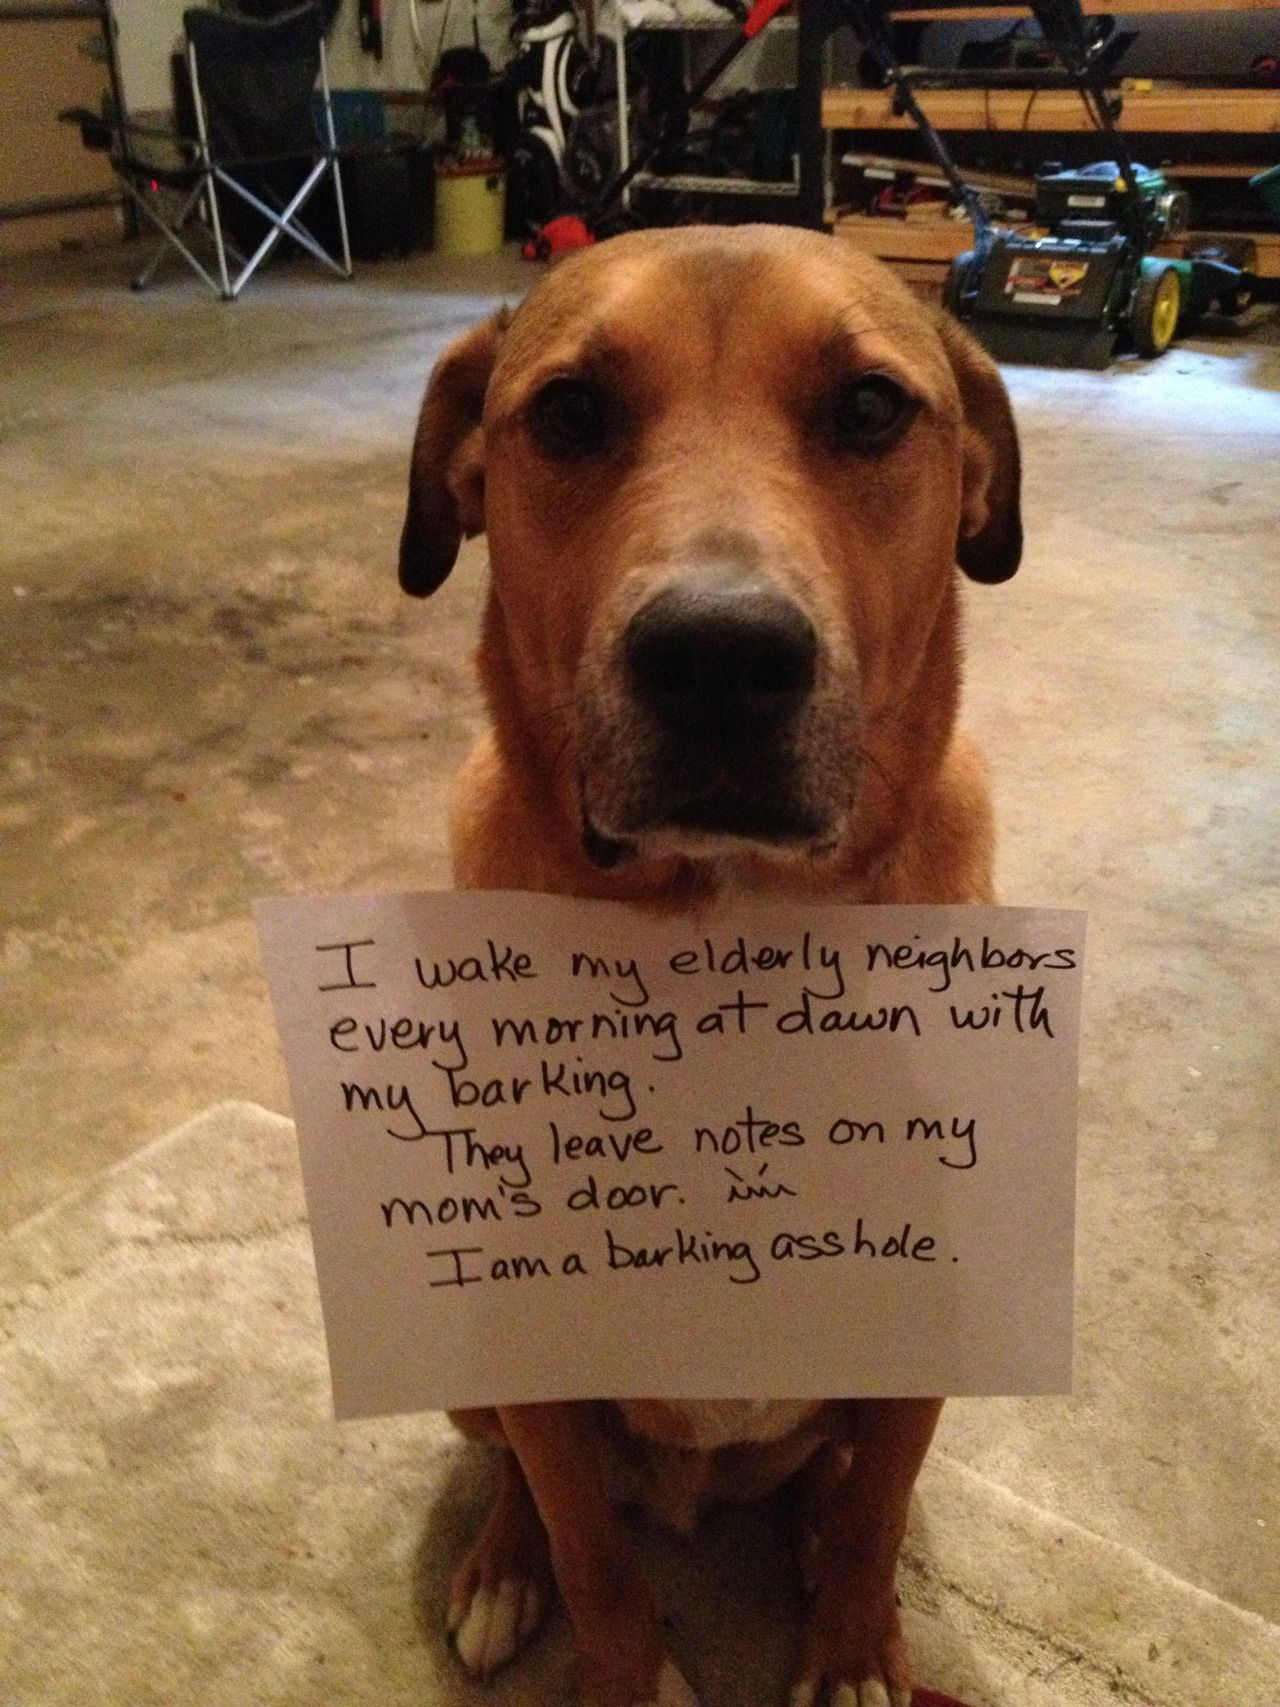 I Wake My Elderly Neighbors Every Morning At Dawn With Barking They Leave Notes On My Moms Door Im A Barkinghole